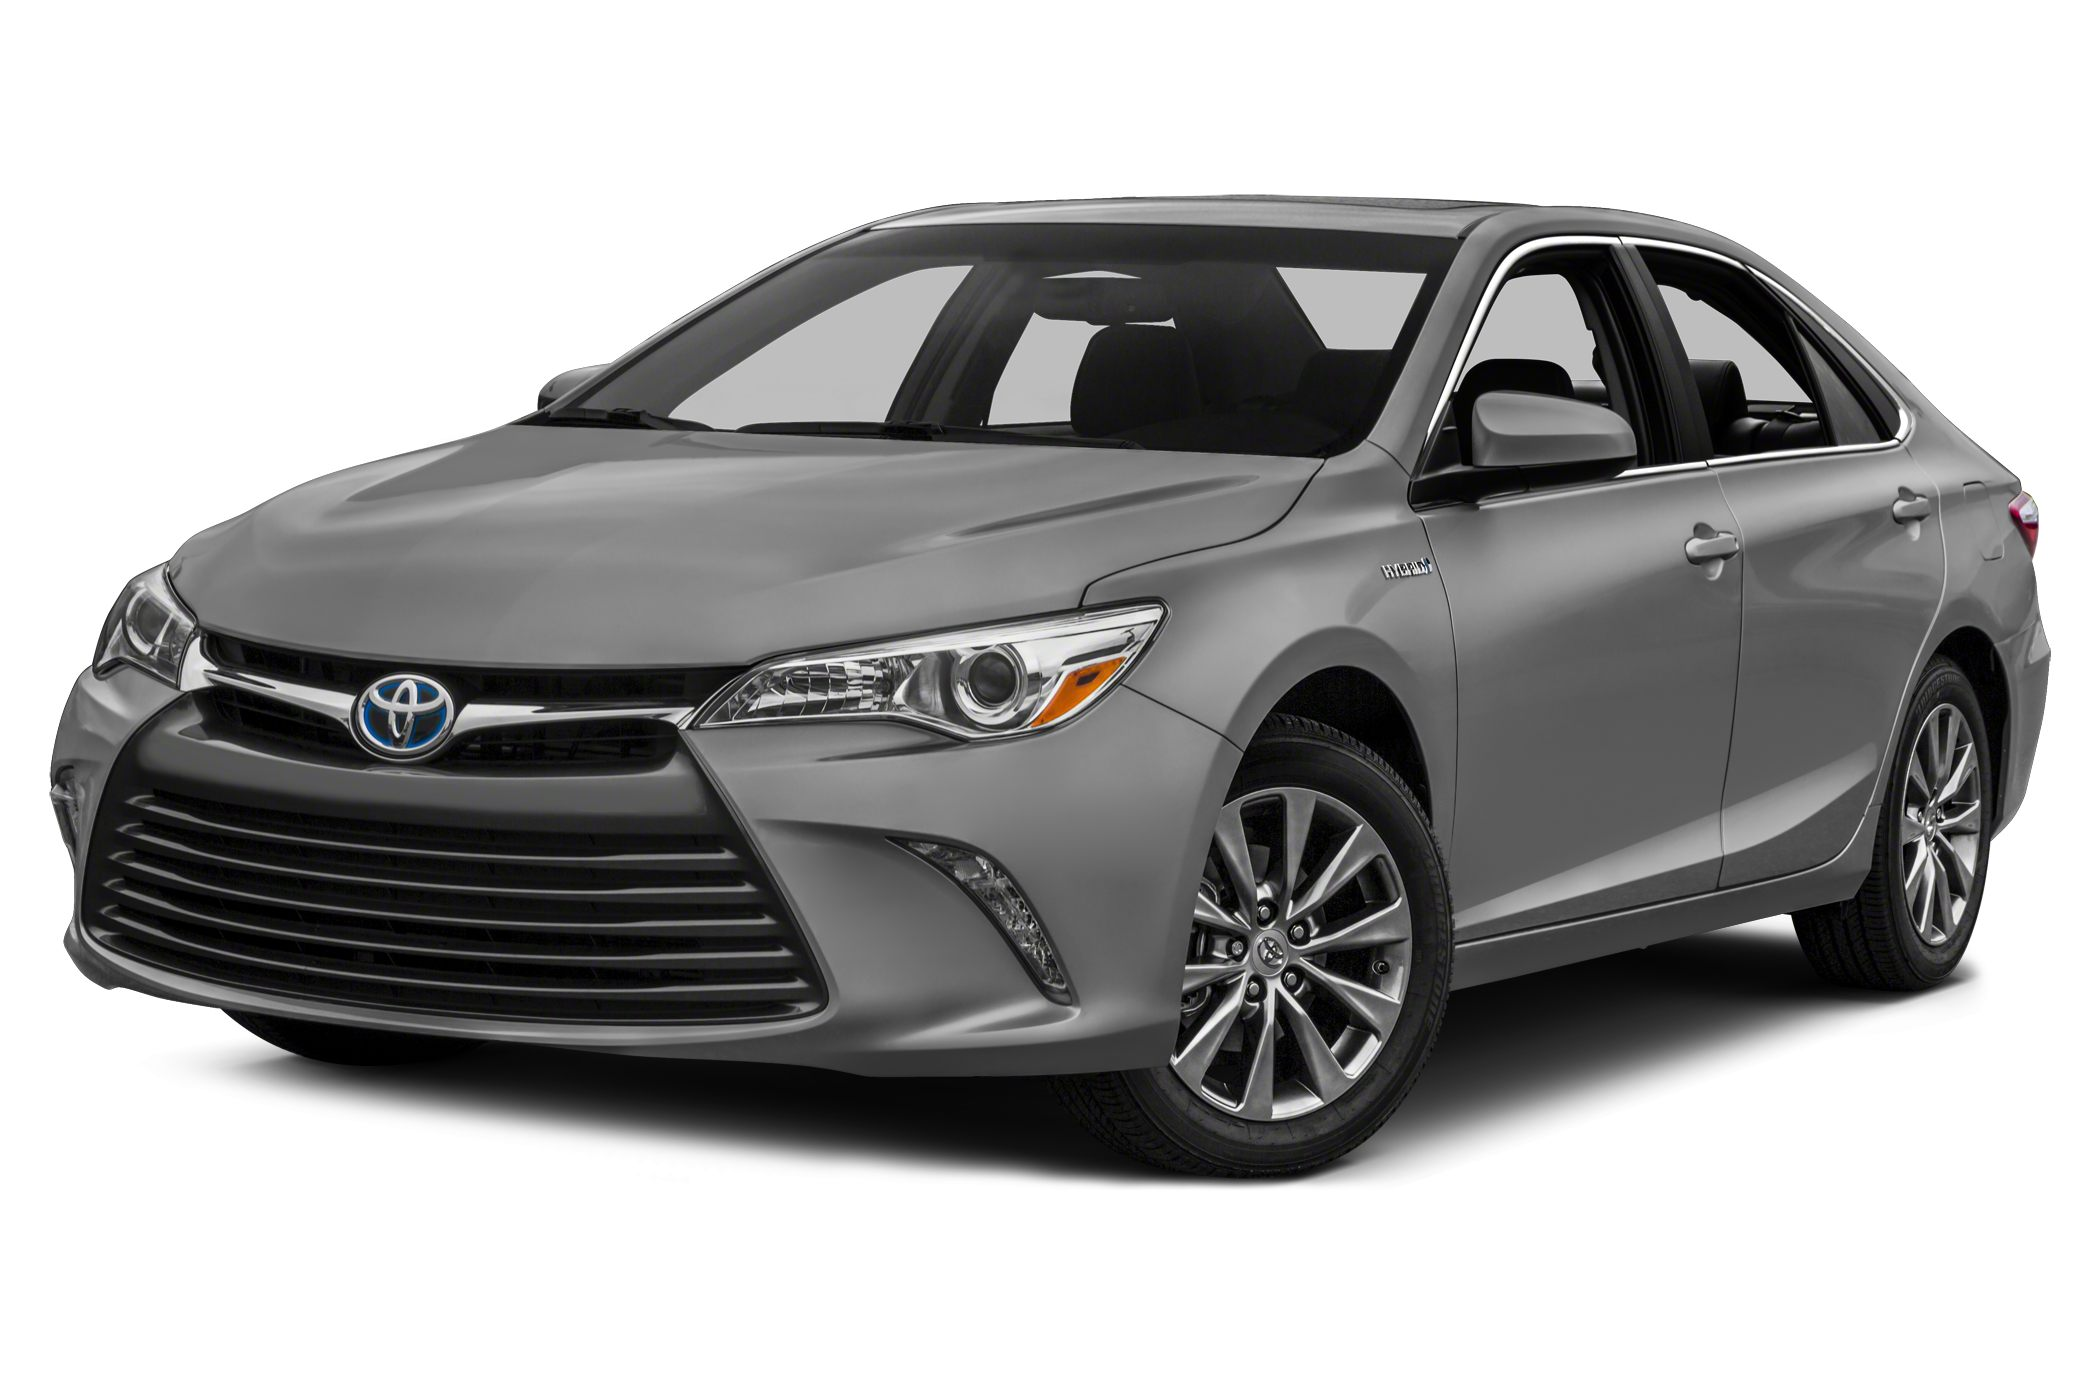 2015 Toyota Camry Hybrid SE Sedan for sale in New York for $31,500 with 0 miles